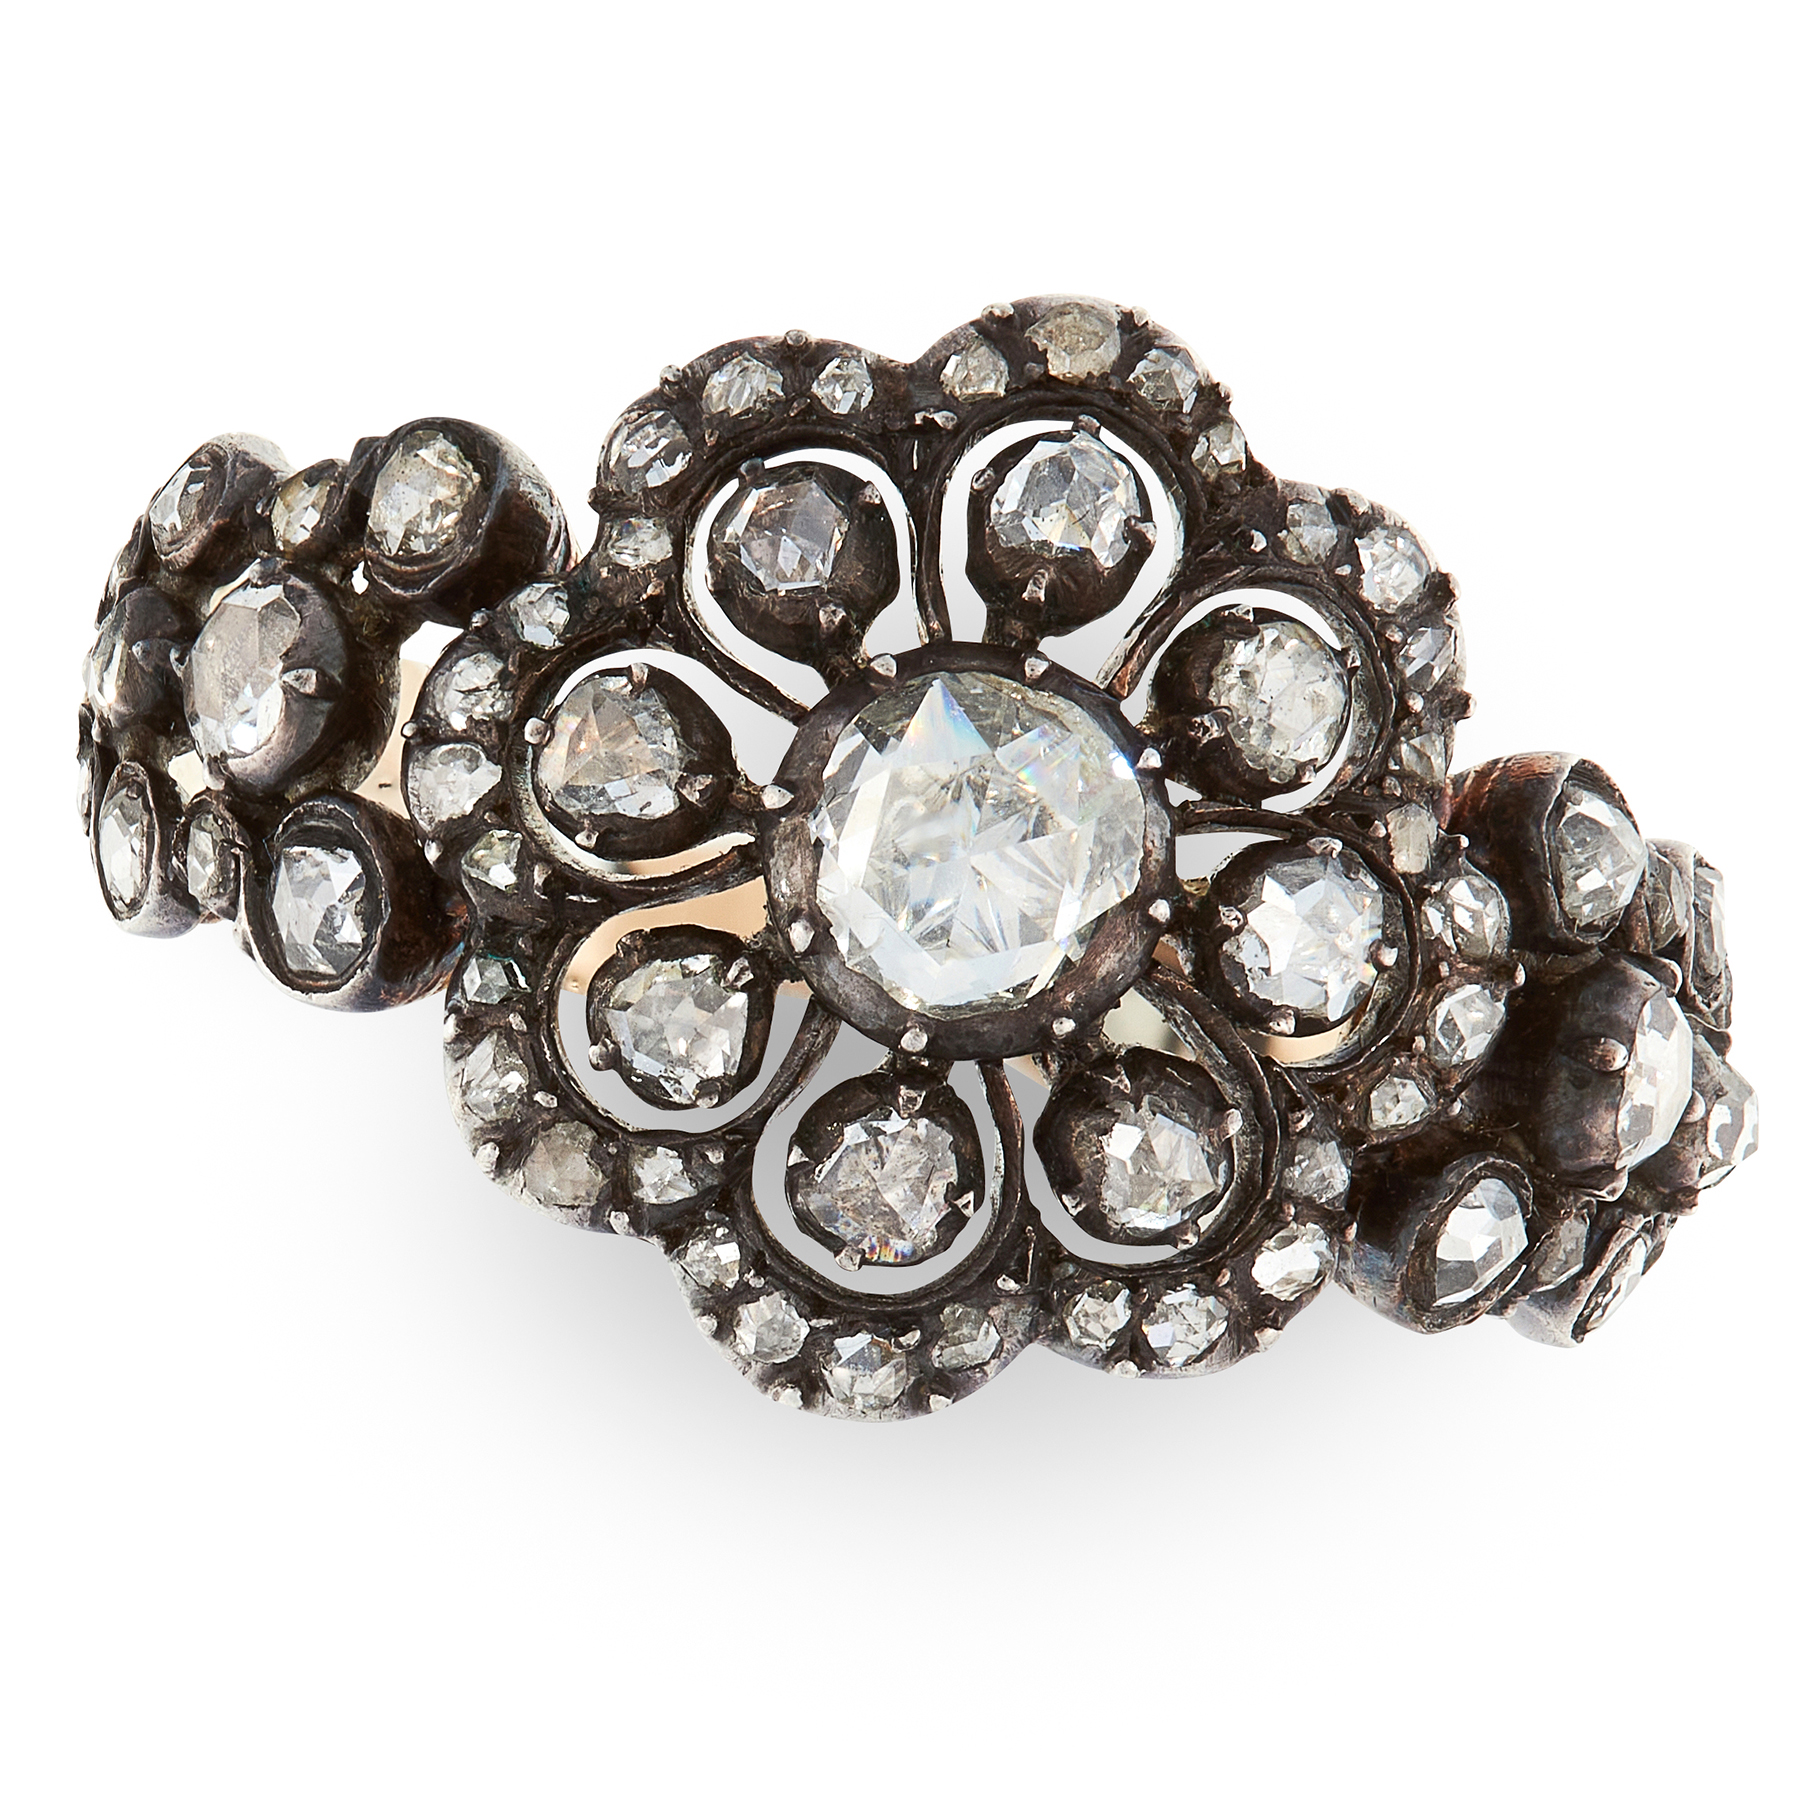 AN ANTIQUE DIAMOND FLEXIBLE RING, DUTCH in yellow gold and silver, set with clusters of rose cut